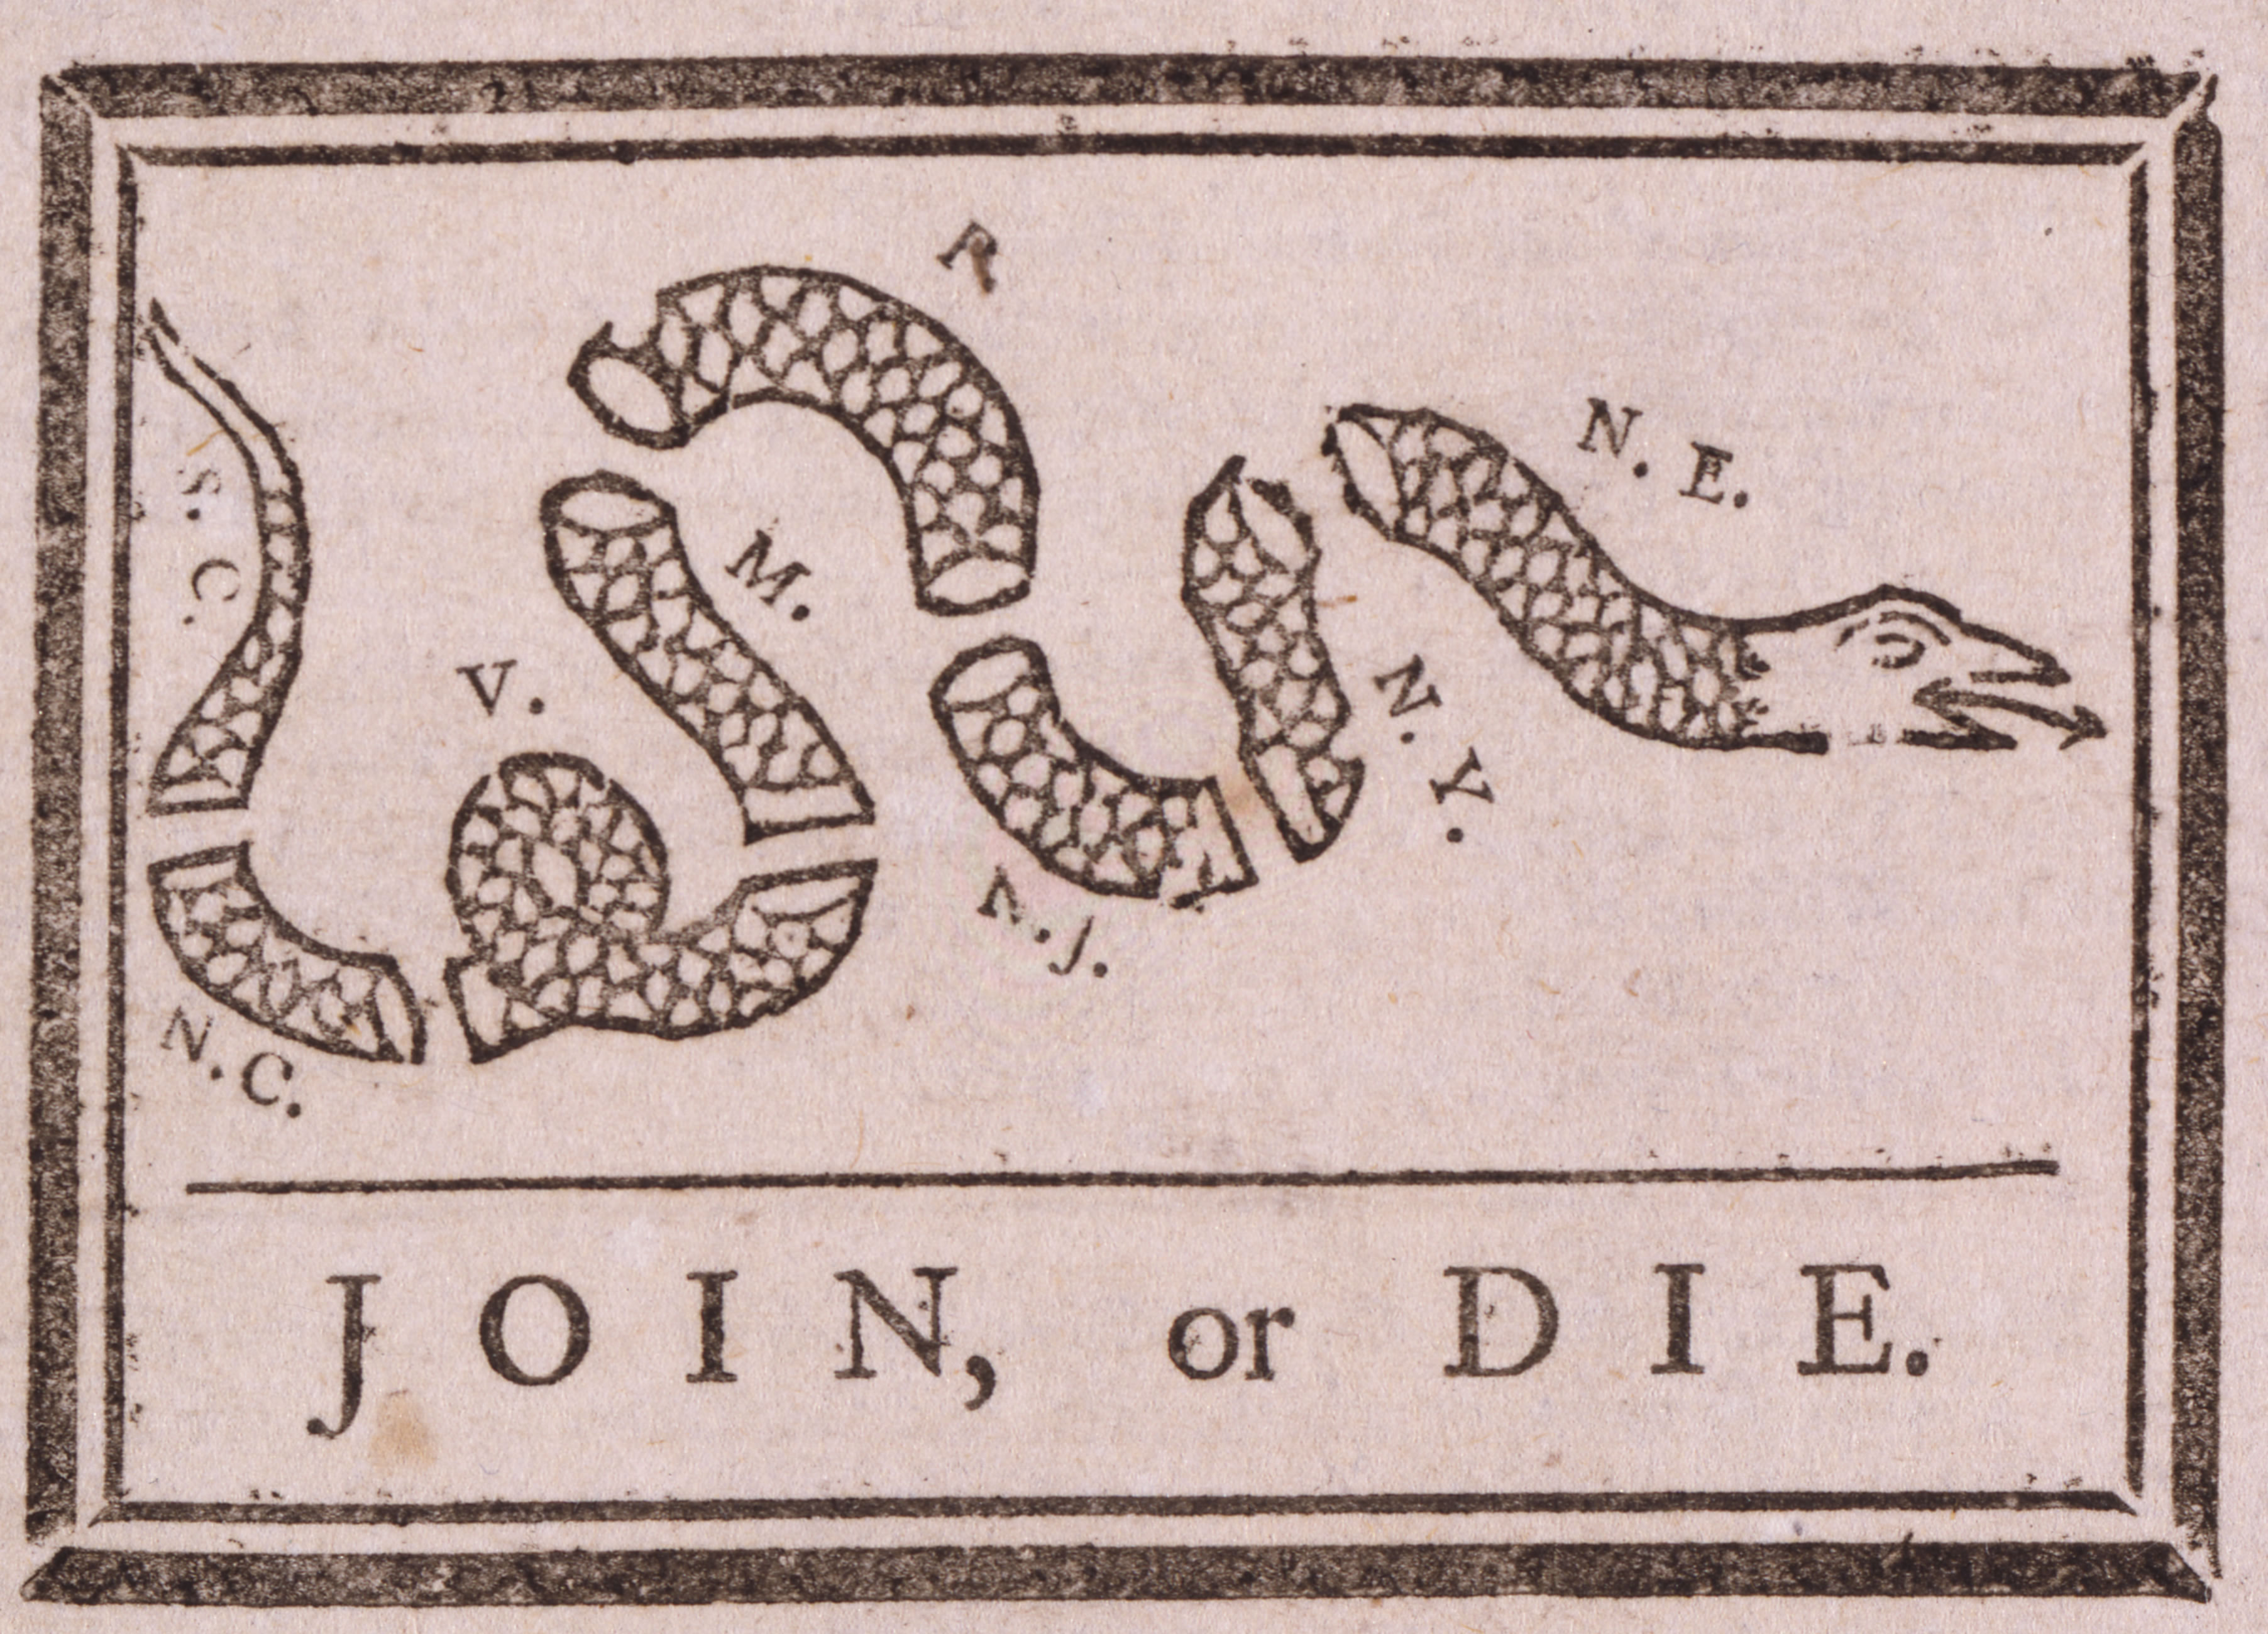 Join, Or Die political cartoon